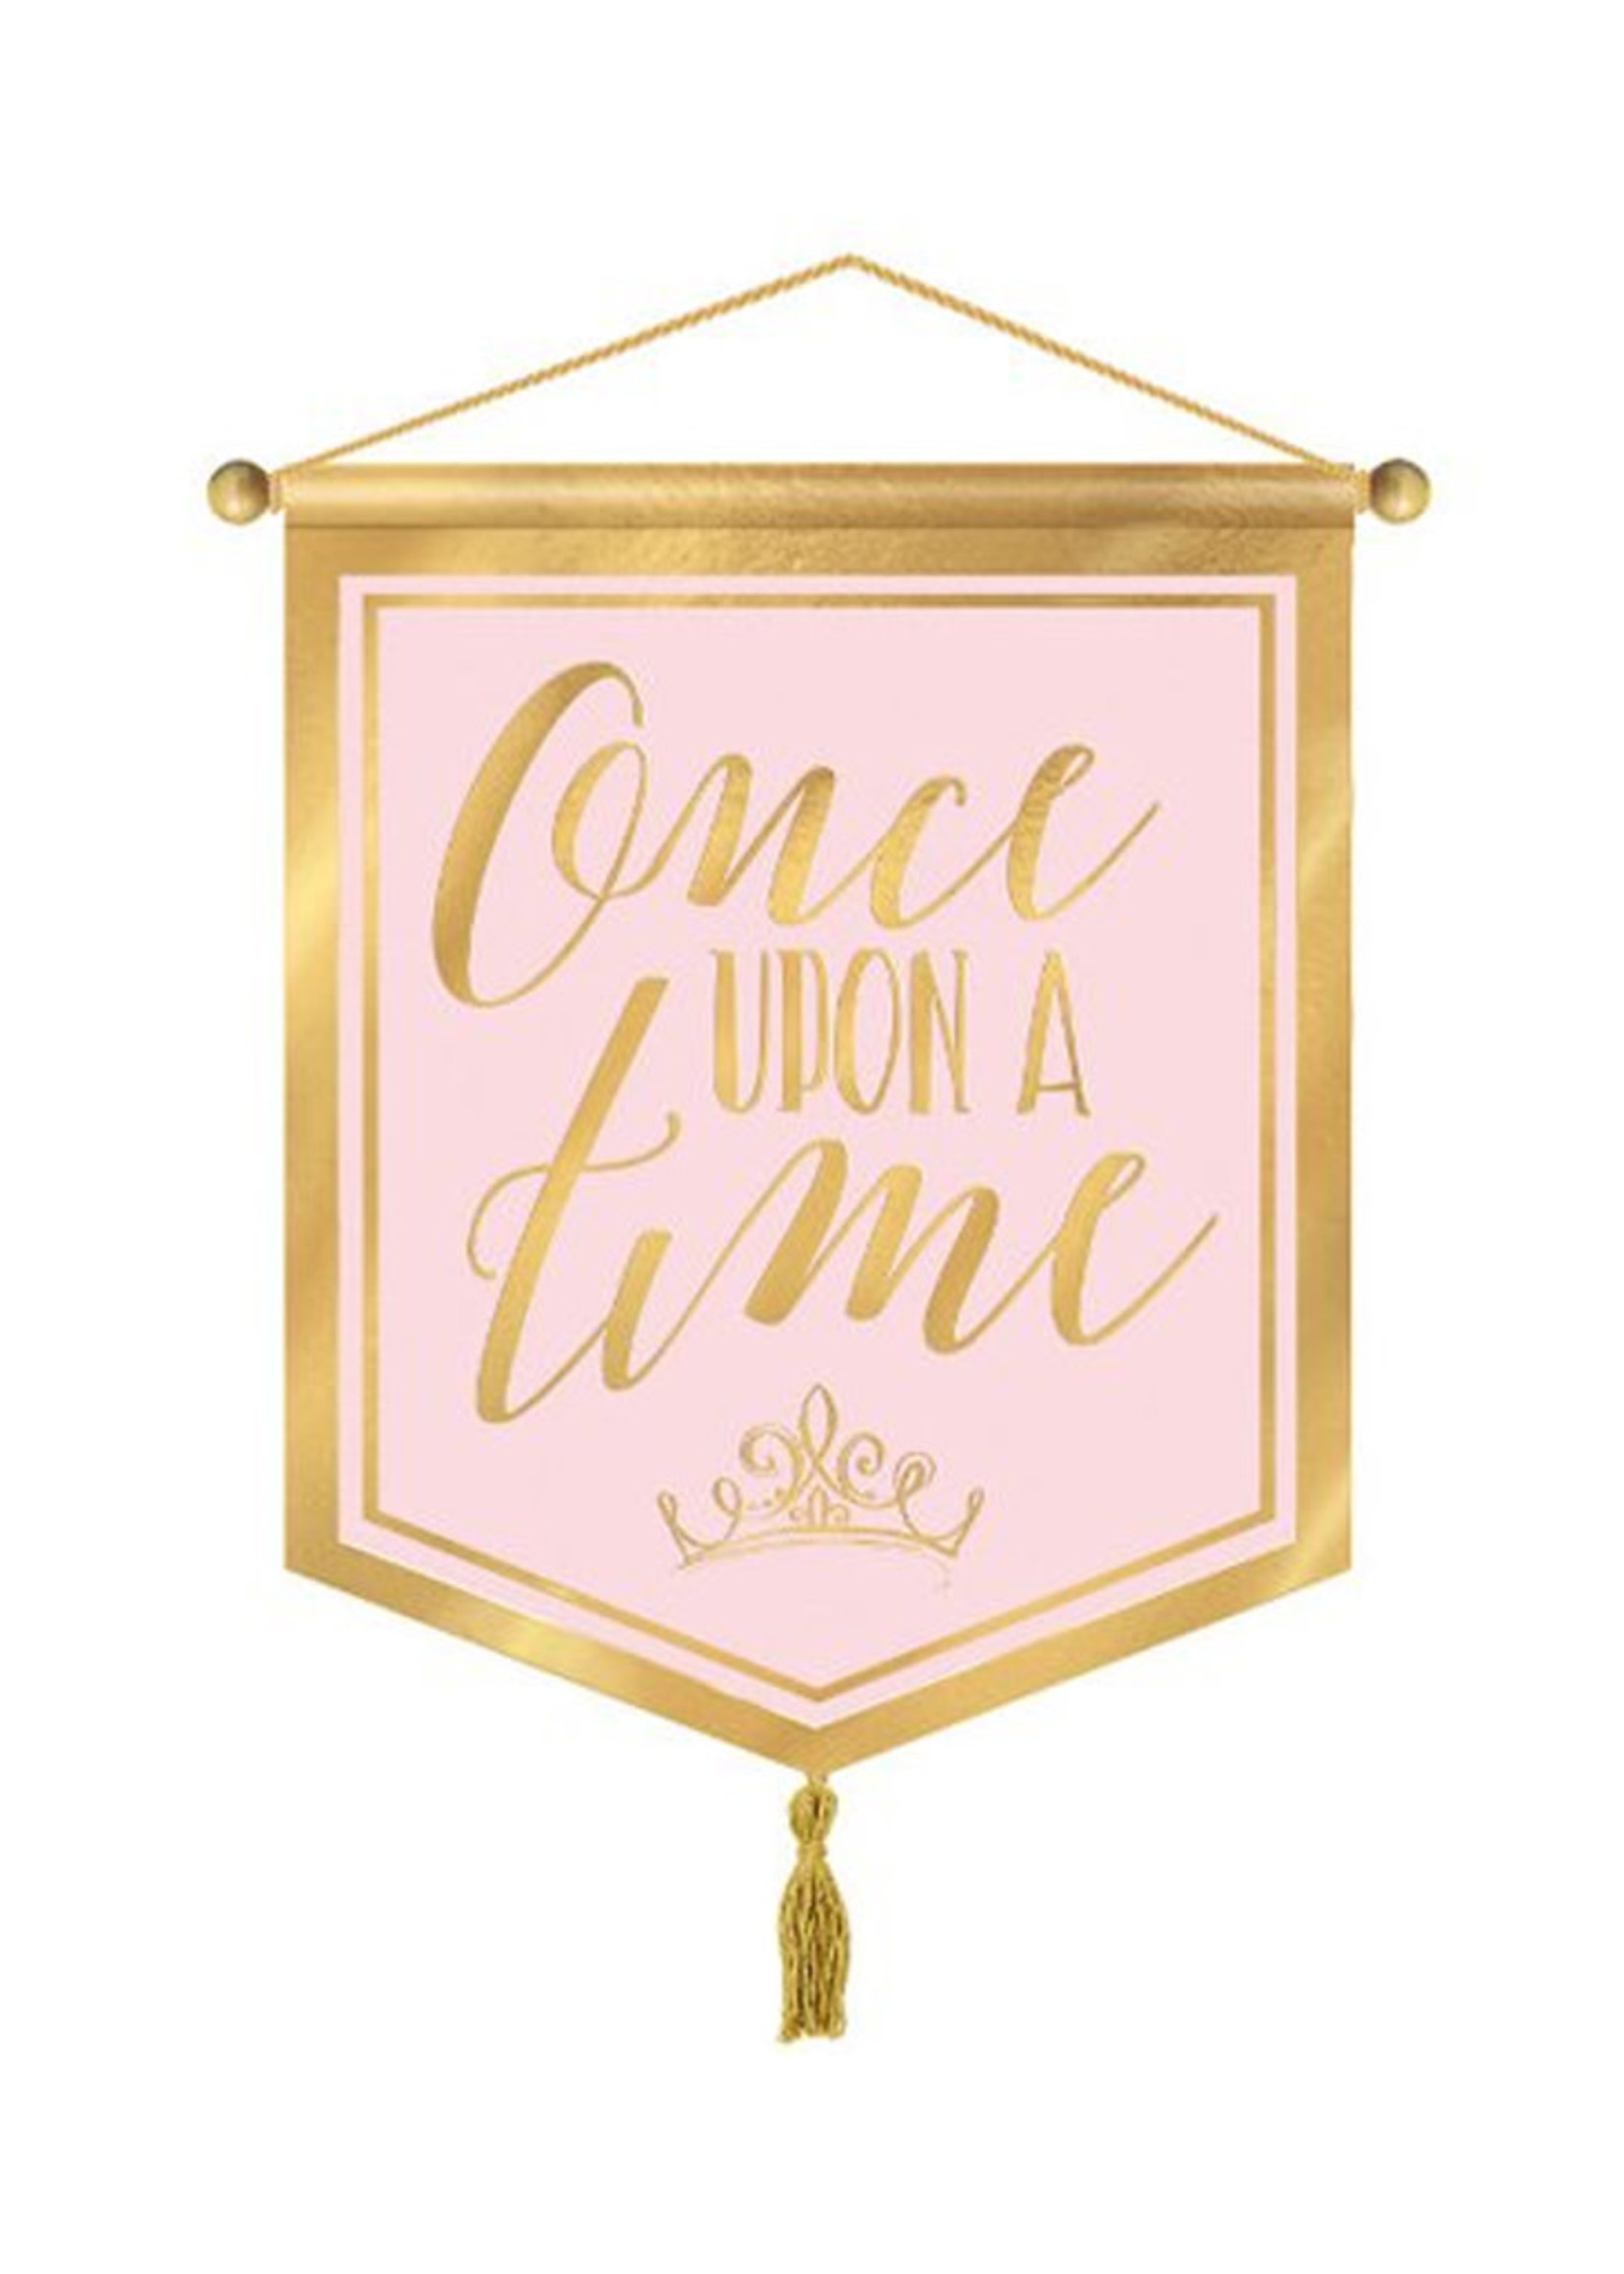 Disney Princess 'Once Upon a Time' Hanging Canvas Sign